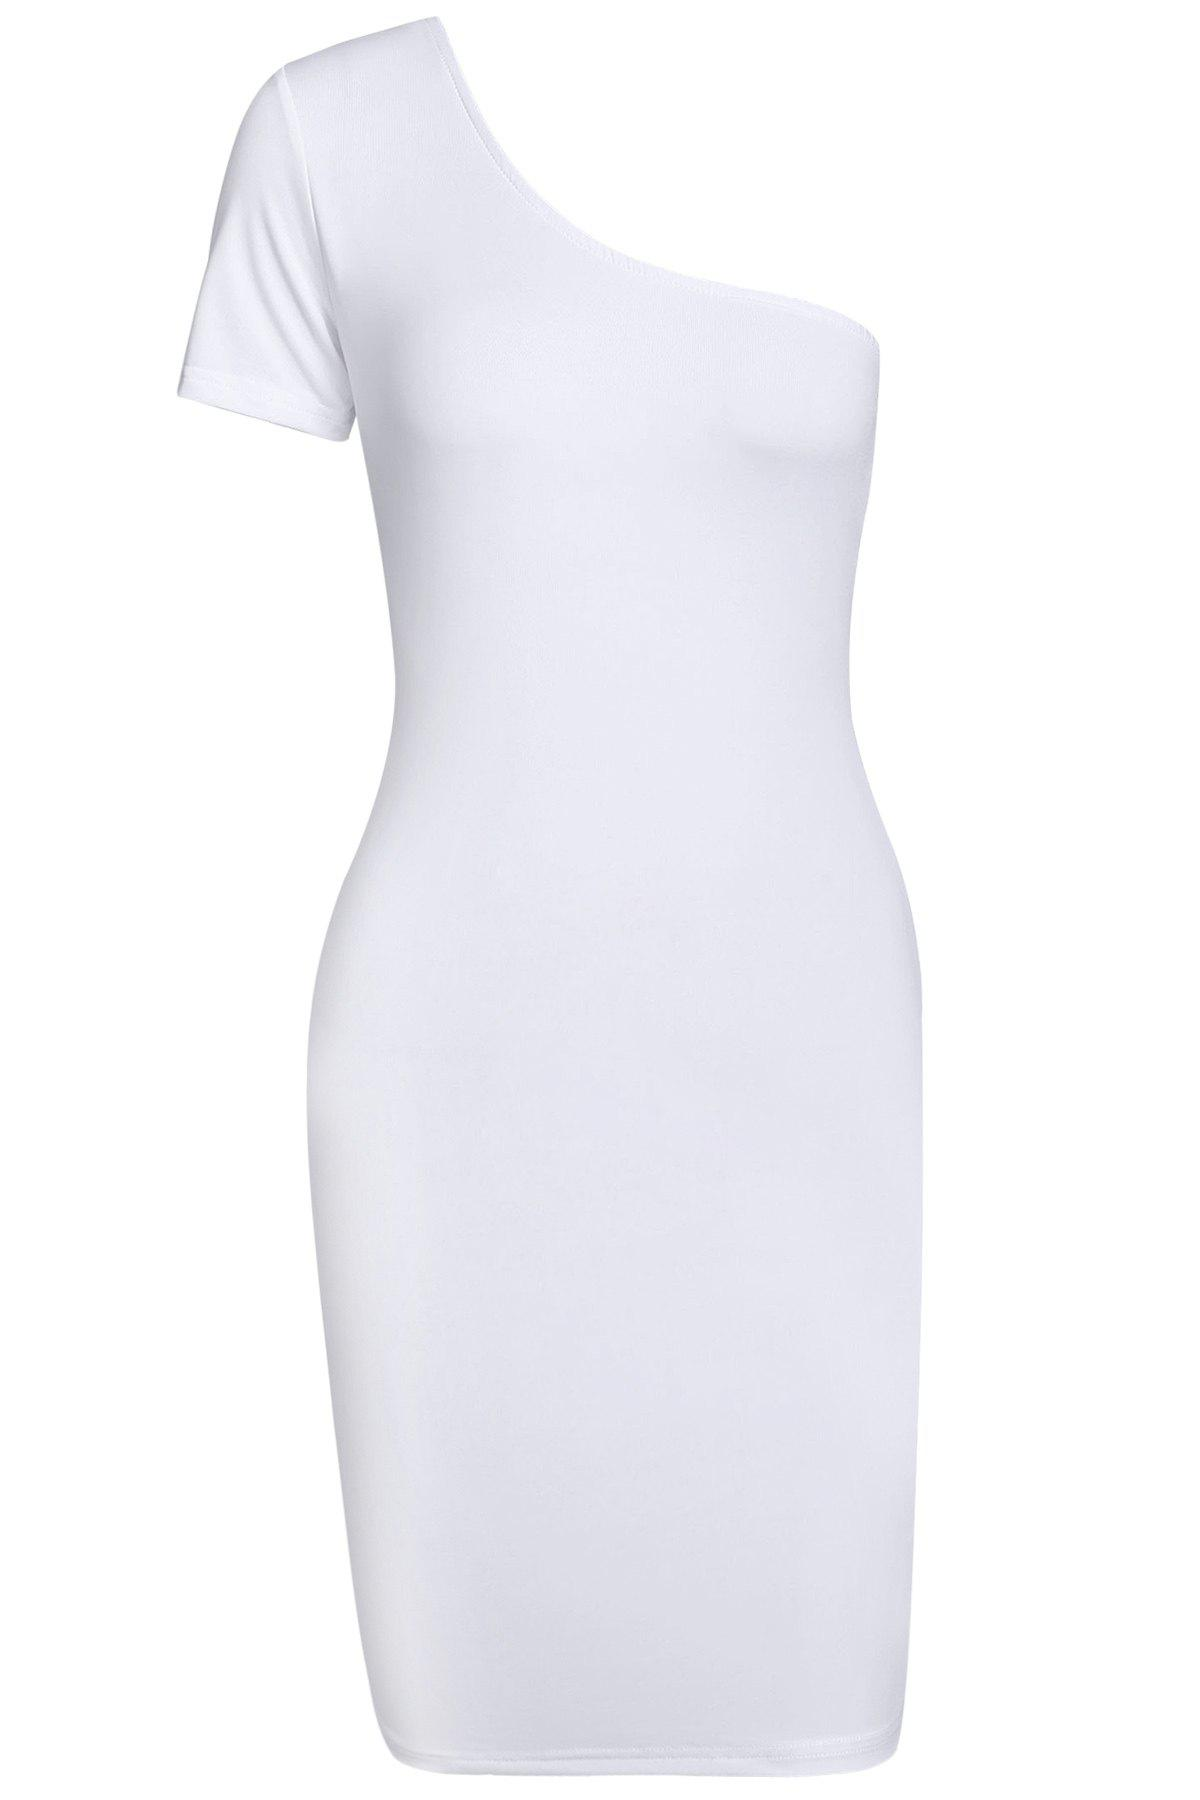 Sexy One Shoulder Short Sleeve Solid Color Women's Bodycon Dress - WHITE XL